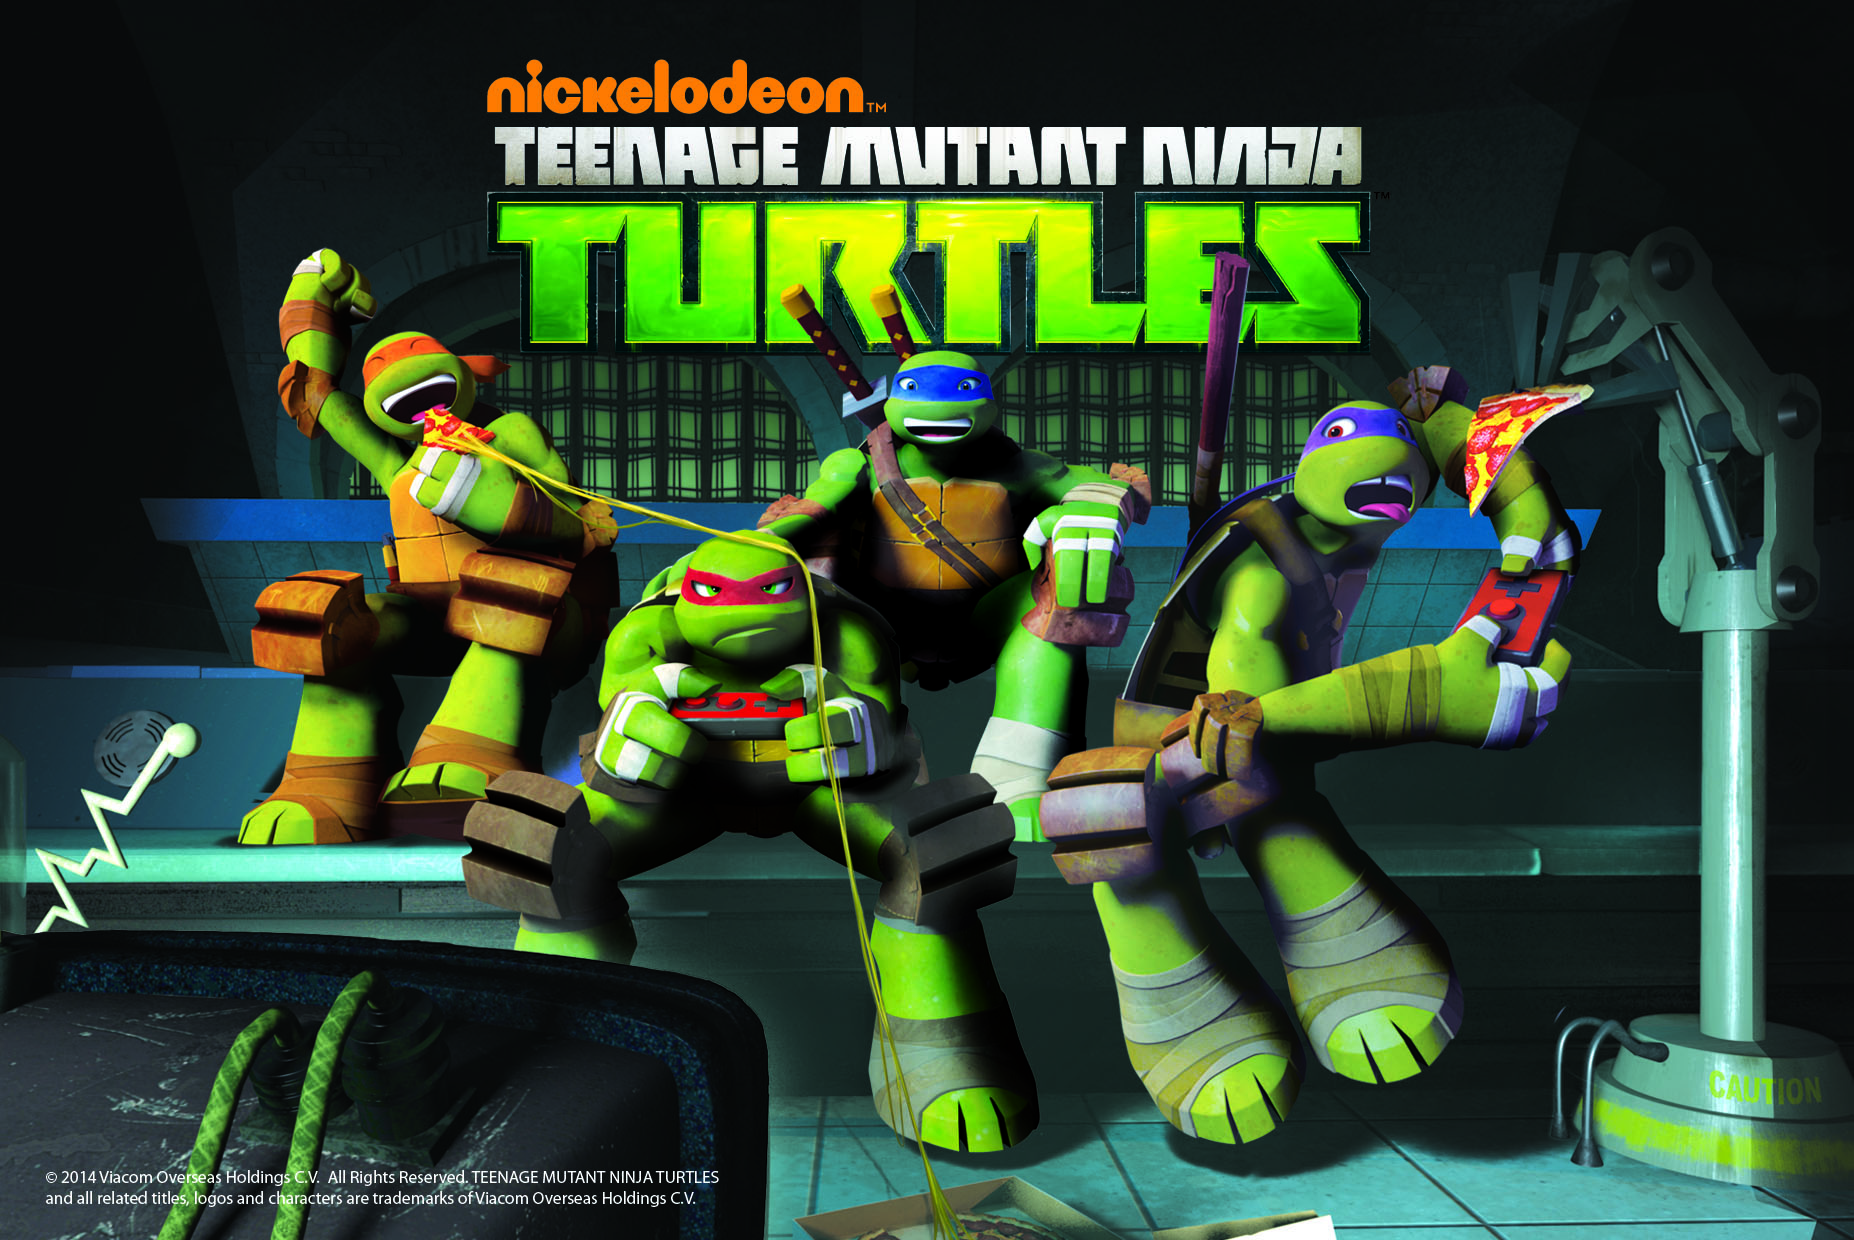 BOOYAKASHA! NICKELODEON'S TEENAGE MUTANT NINJA TURTLES ARE ...